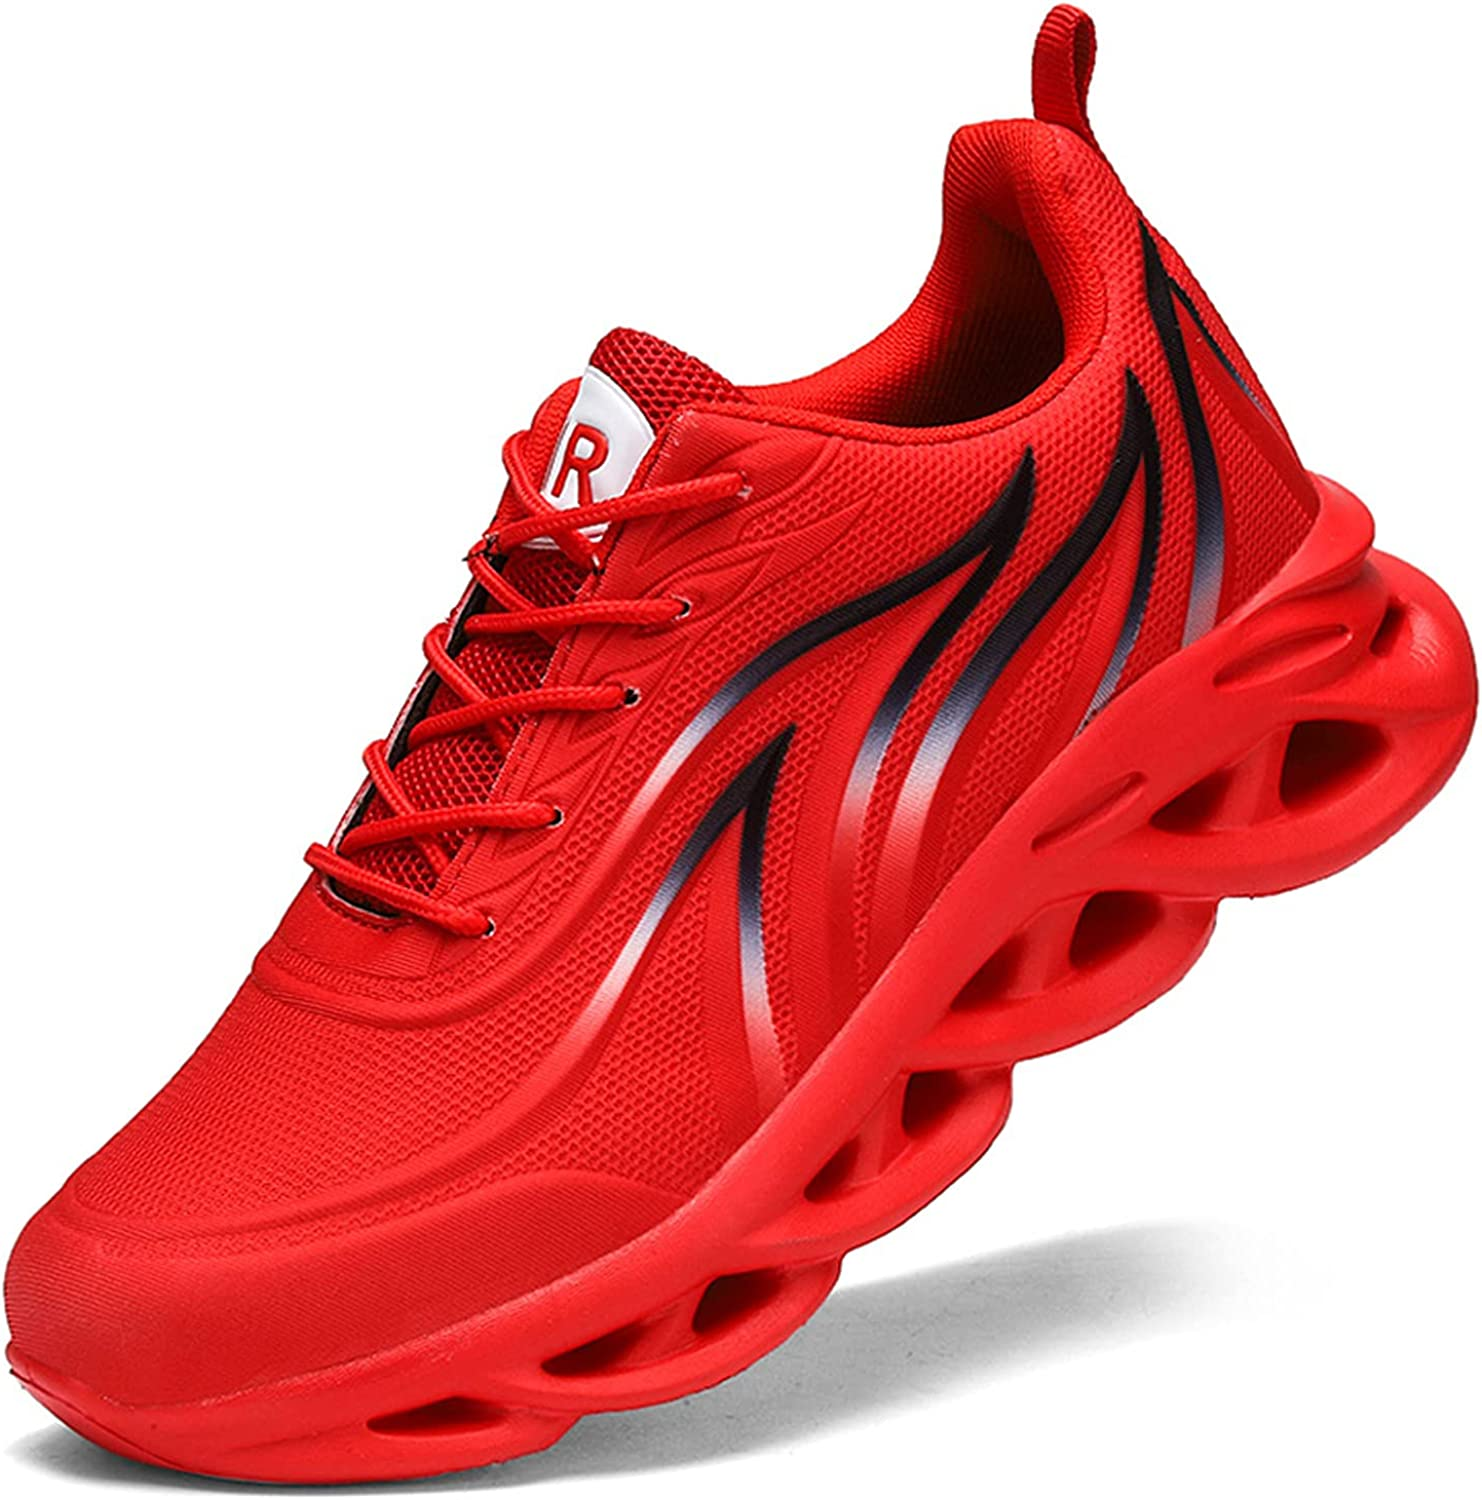 TOPSSCTR Men's Walking Max 57% OFF Shoes Fashionable Breathable Athletic Fashion Running